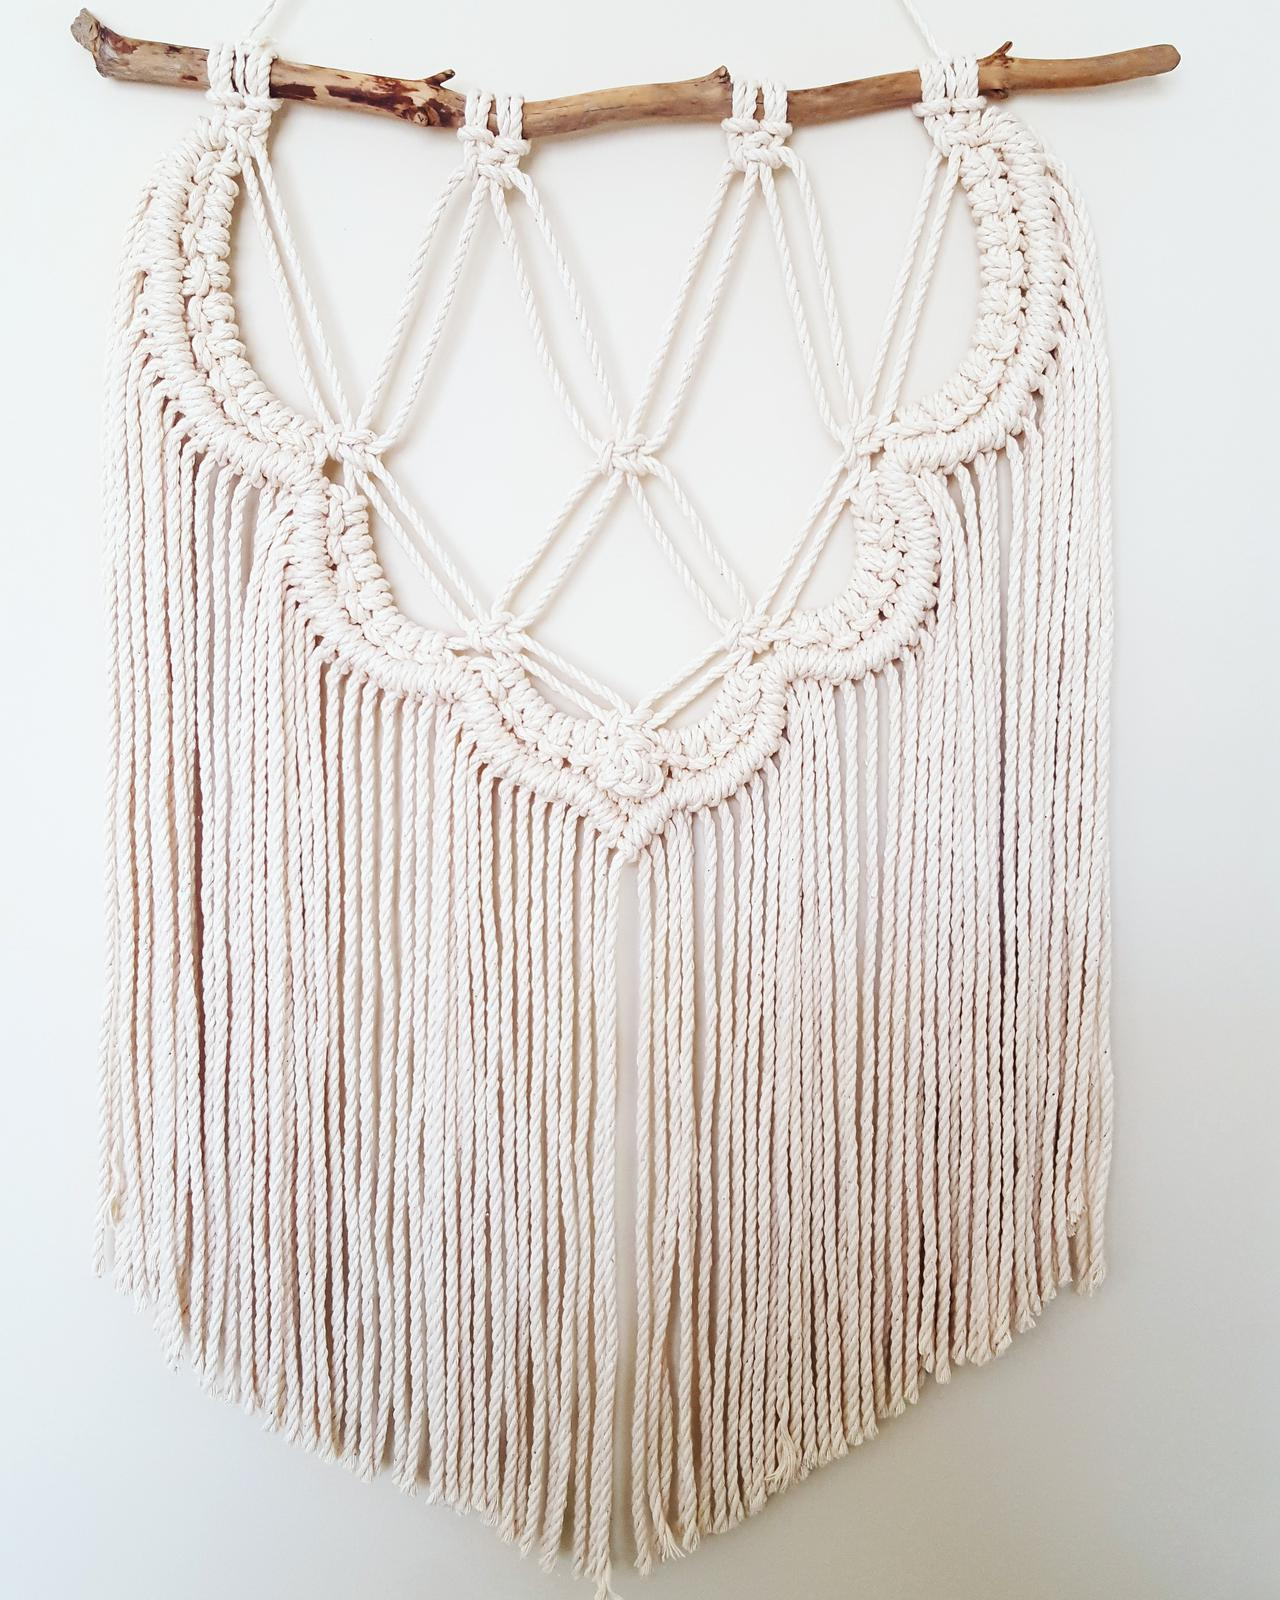 Joy | Macrame wall hanging